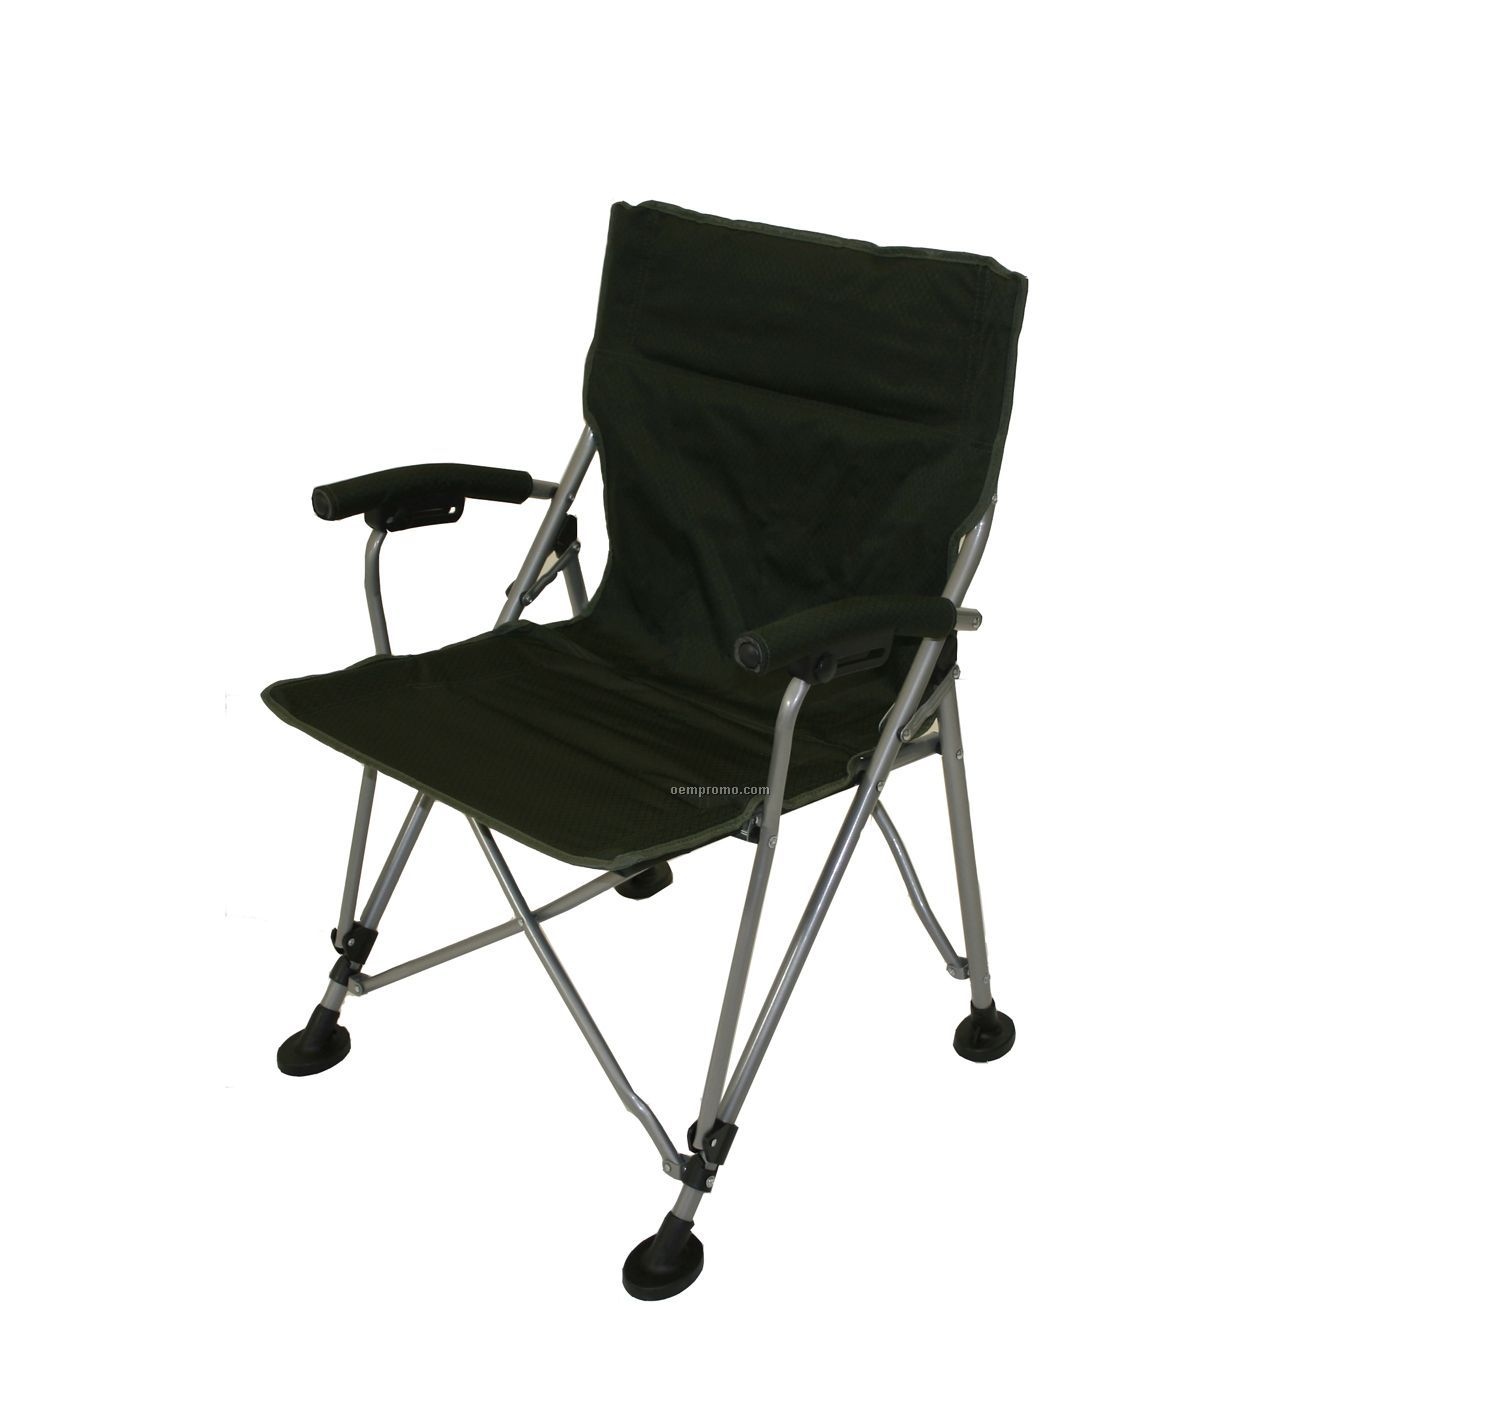 chair in a bag with footrest reading chairs for bedroom baseball glove china wholesale